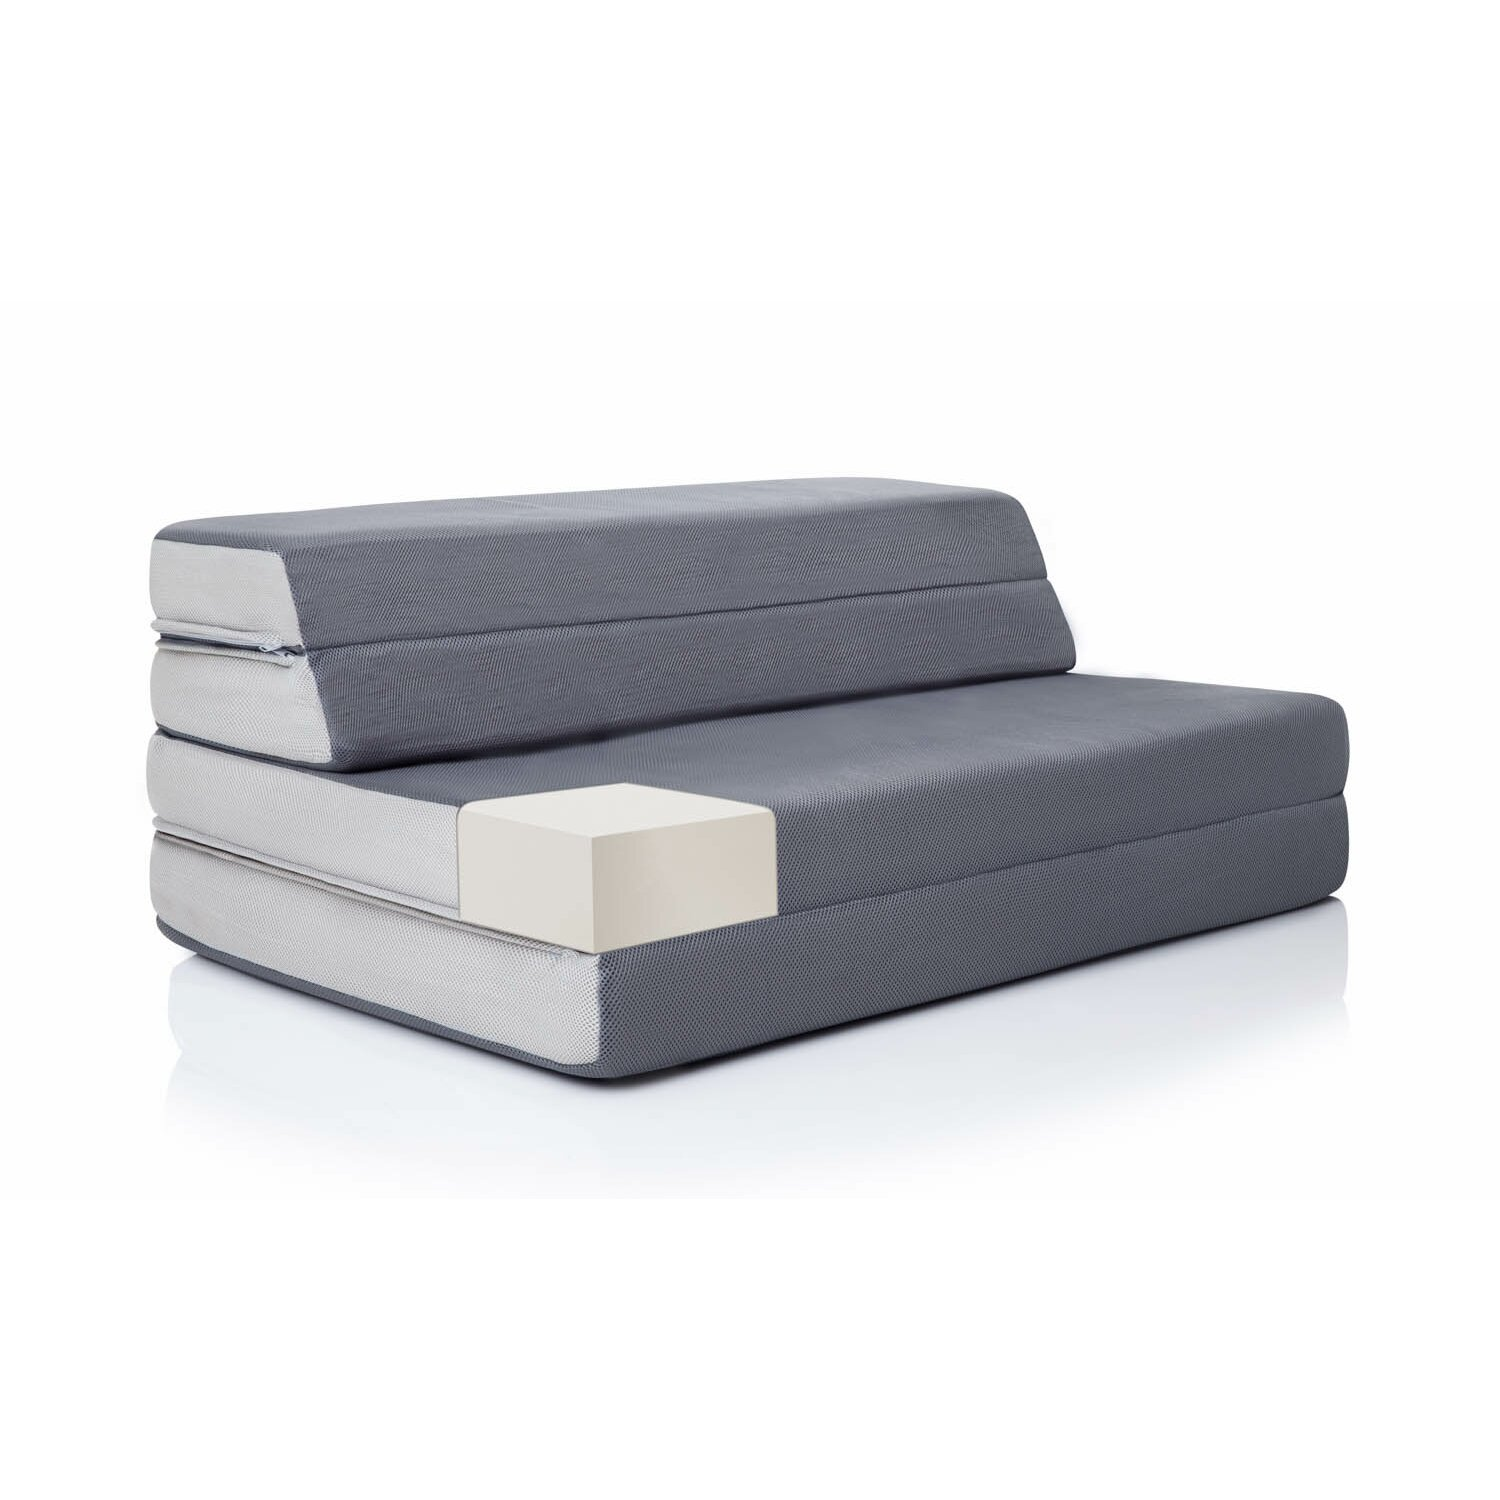 Lucid folding foam mattress reviews wayfair Where to buy mattress foam